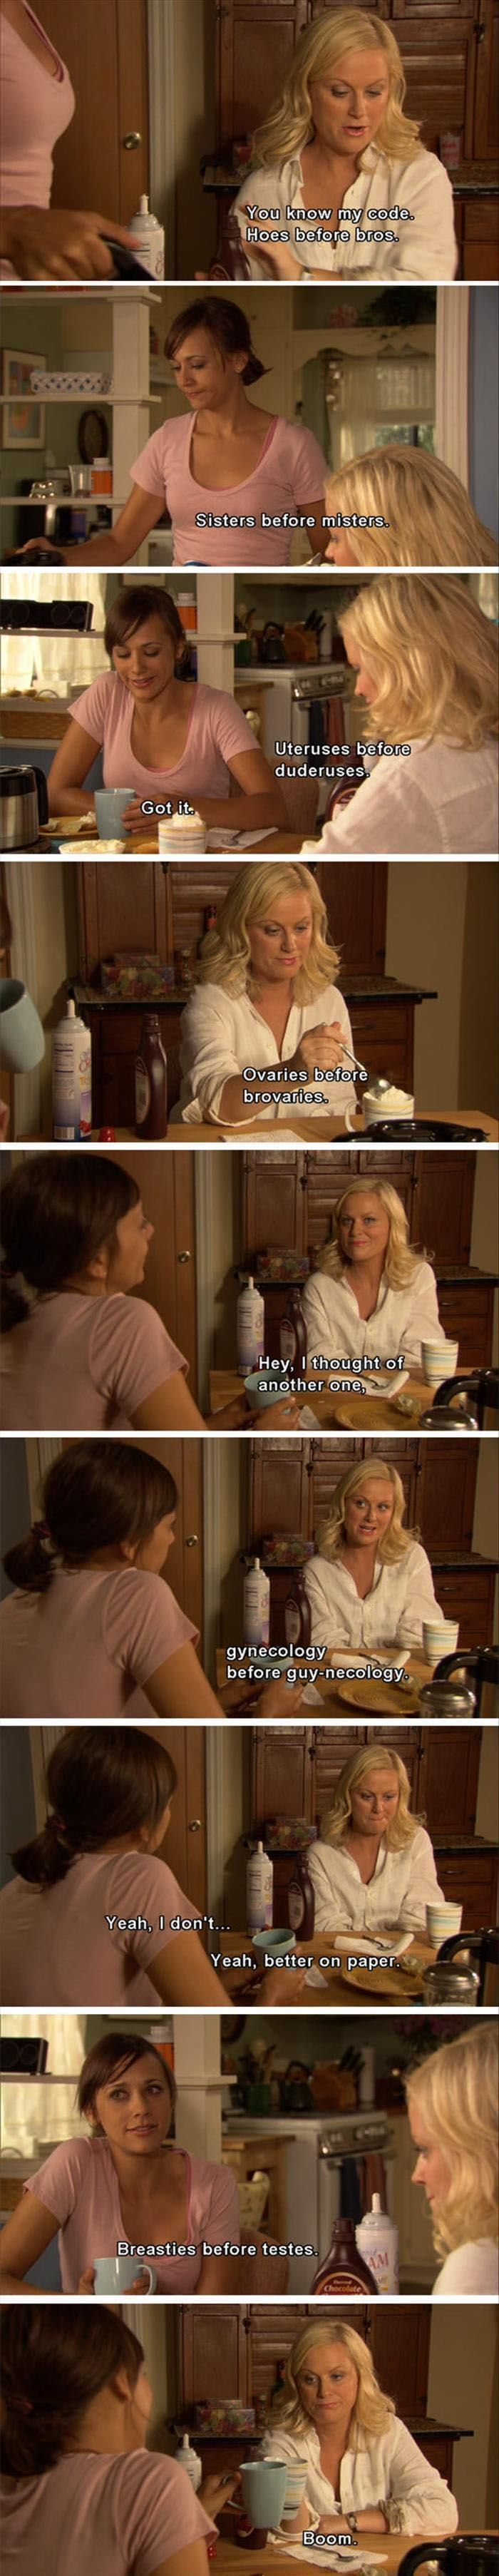 You know my code. | Leslie and Ann, Parks and Rec